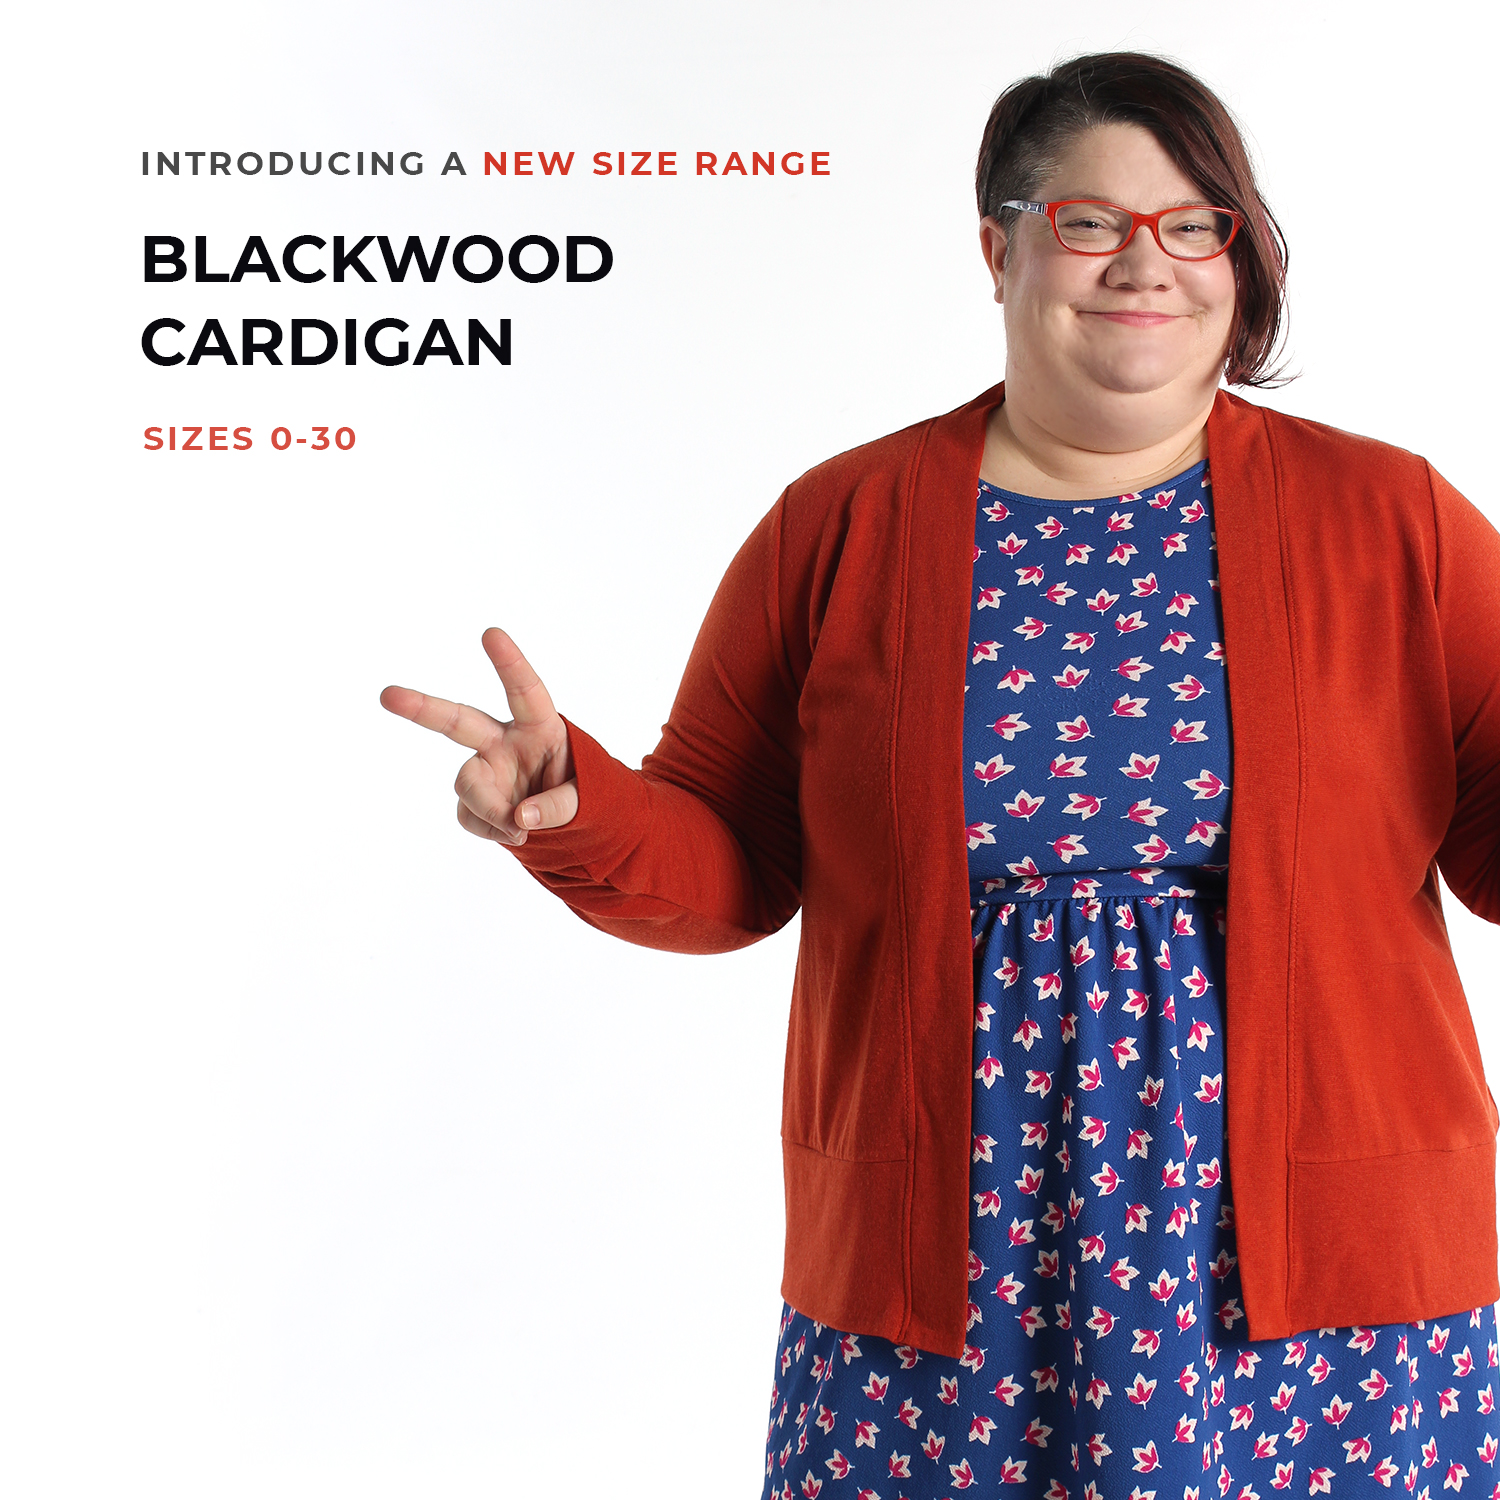 Helen's Closet Blackwood Cardigan image, showing a model wearing the new extended size range